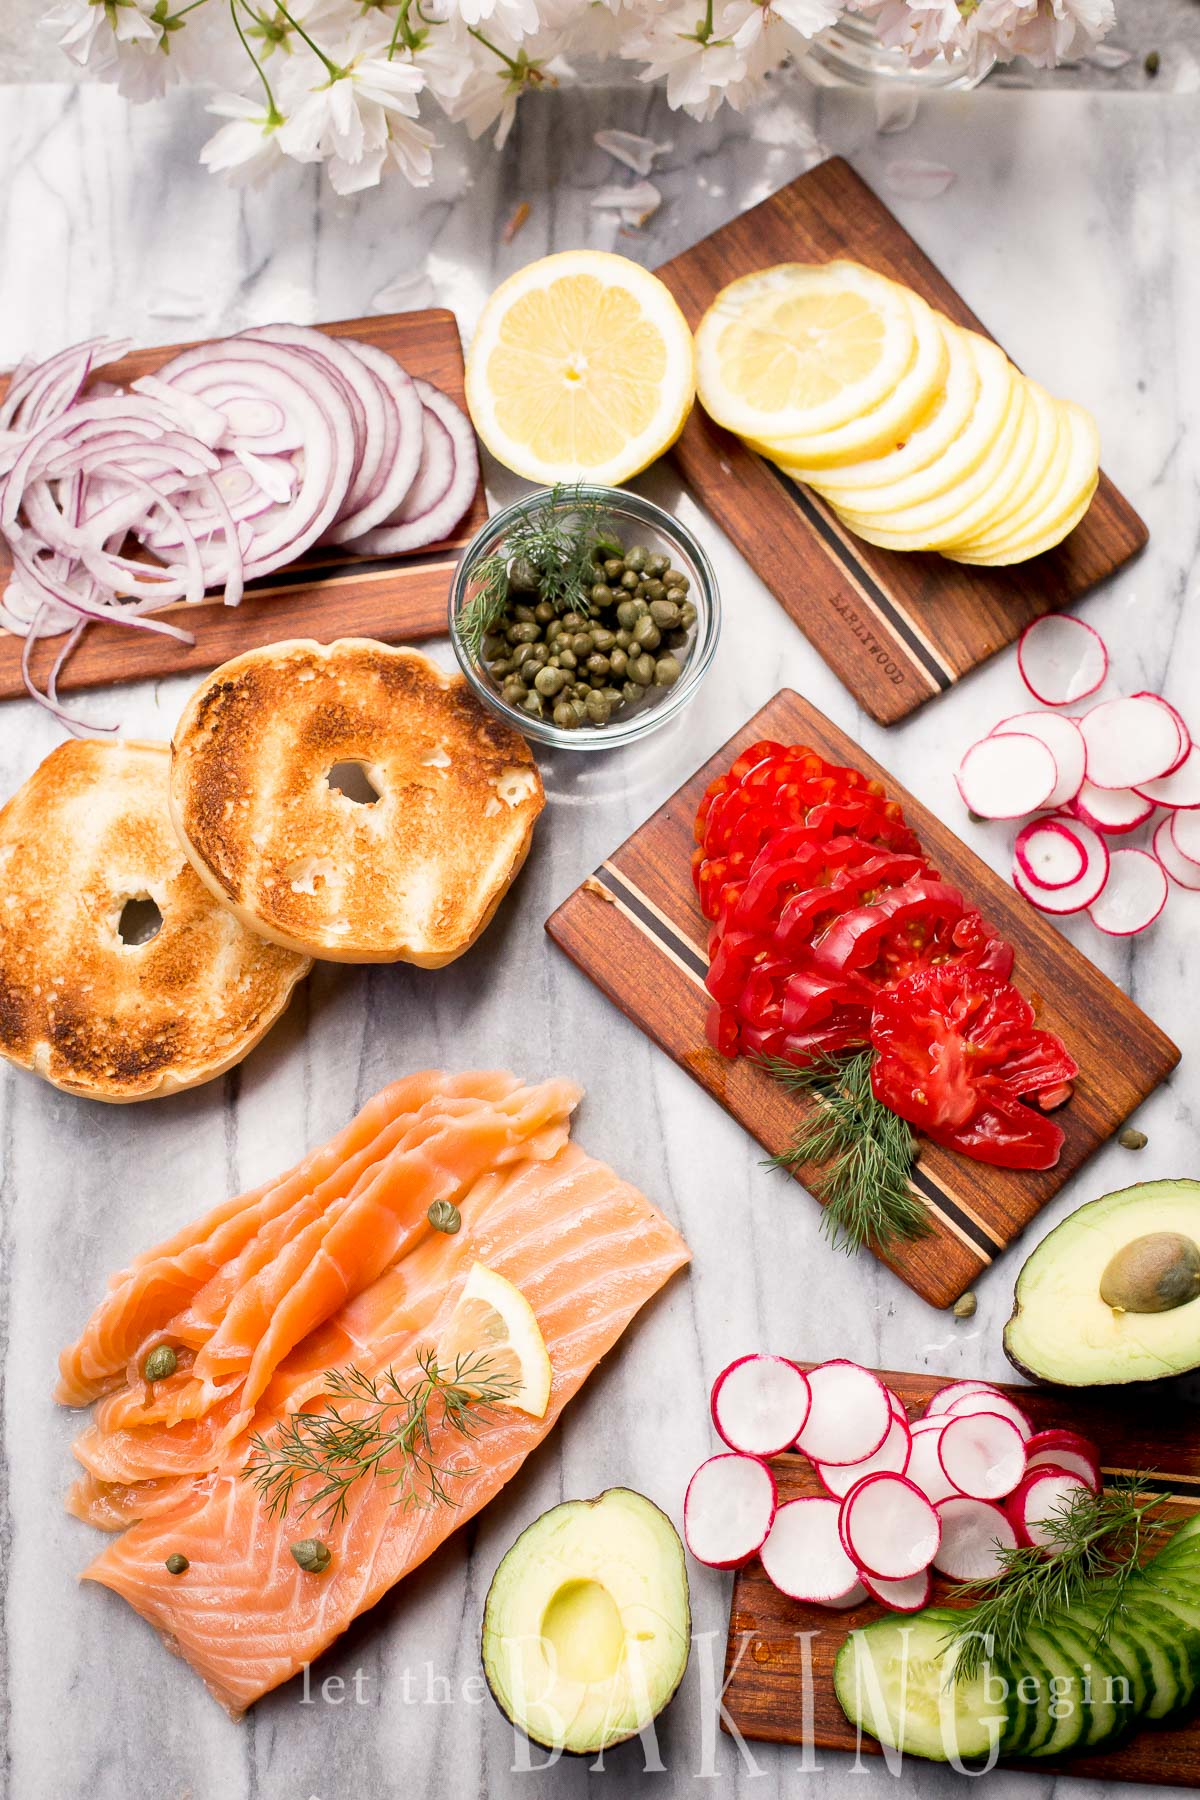 Smoked salmon recipes - this is shown with salmon, bagels, capers, onions, lemons and radish.